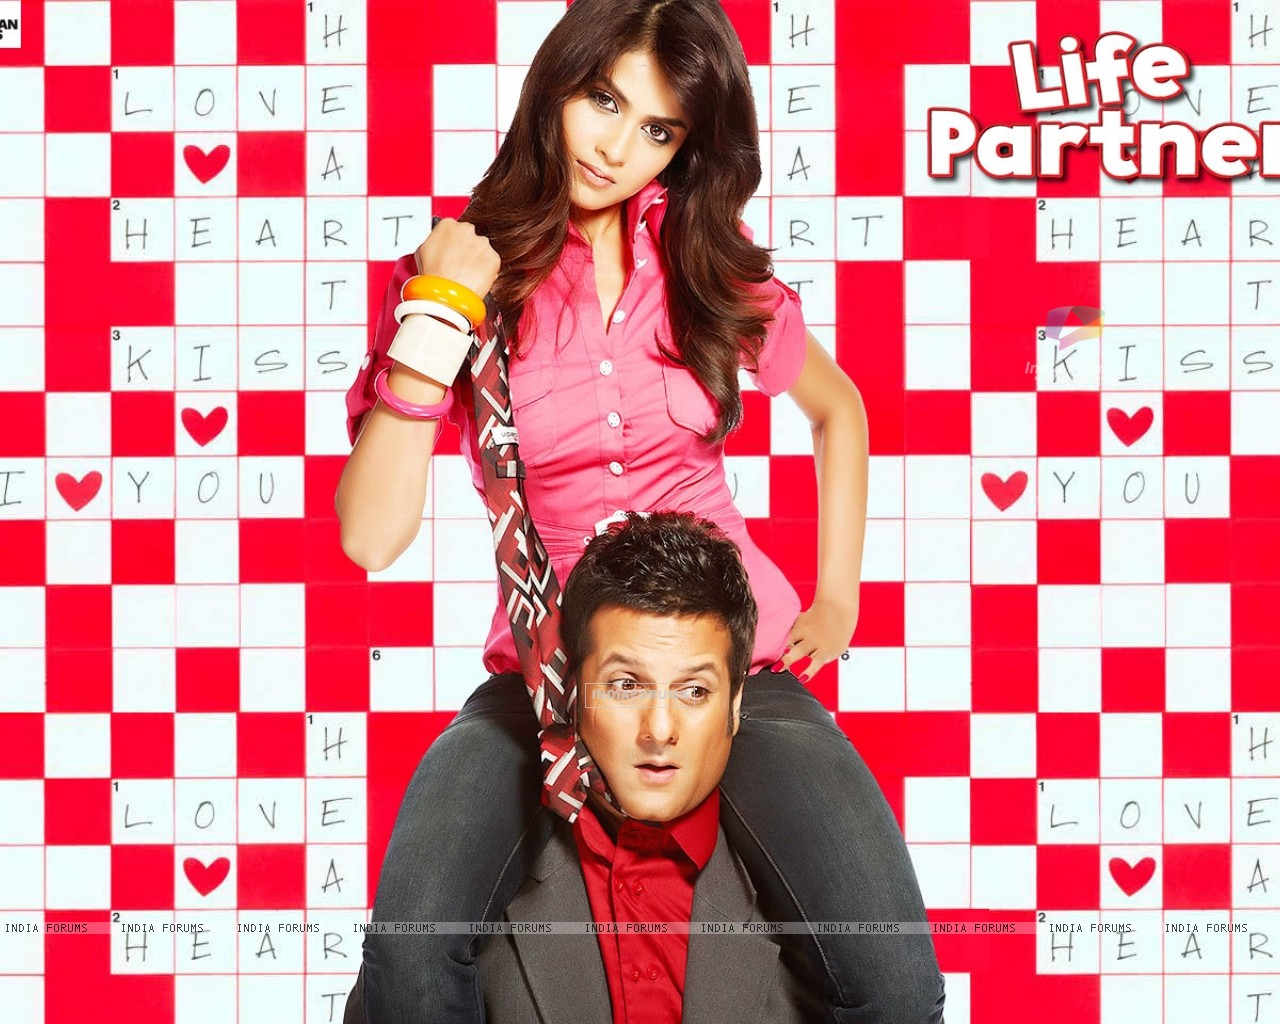 Life Partner movie wallpaper (31424) size:1280x1024